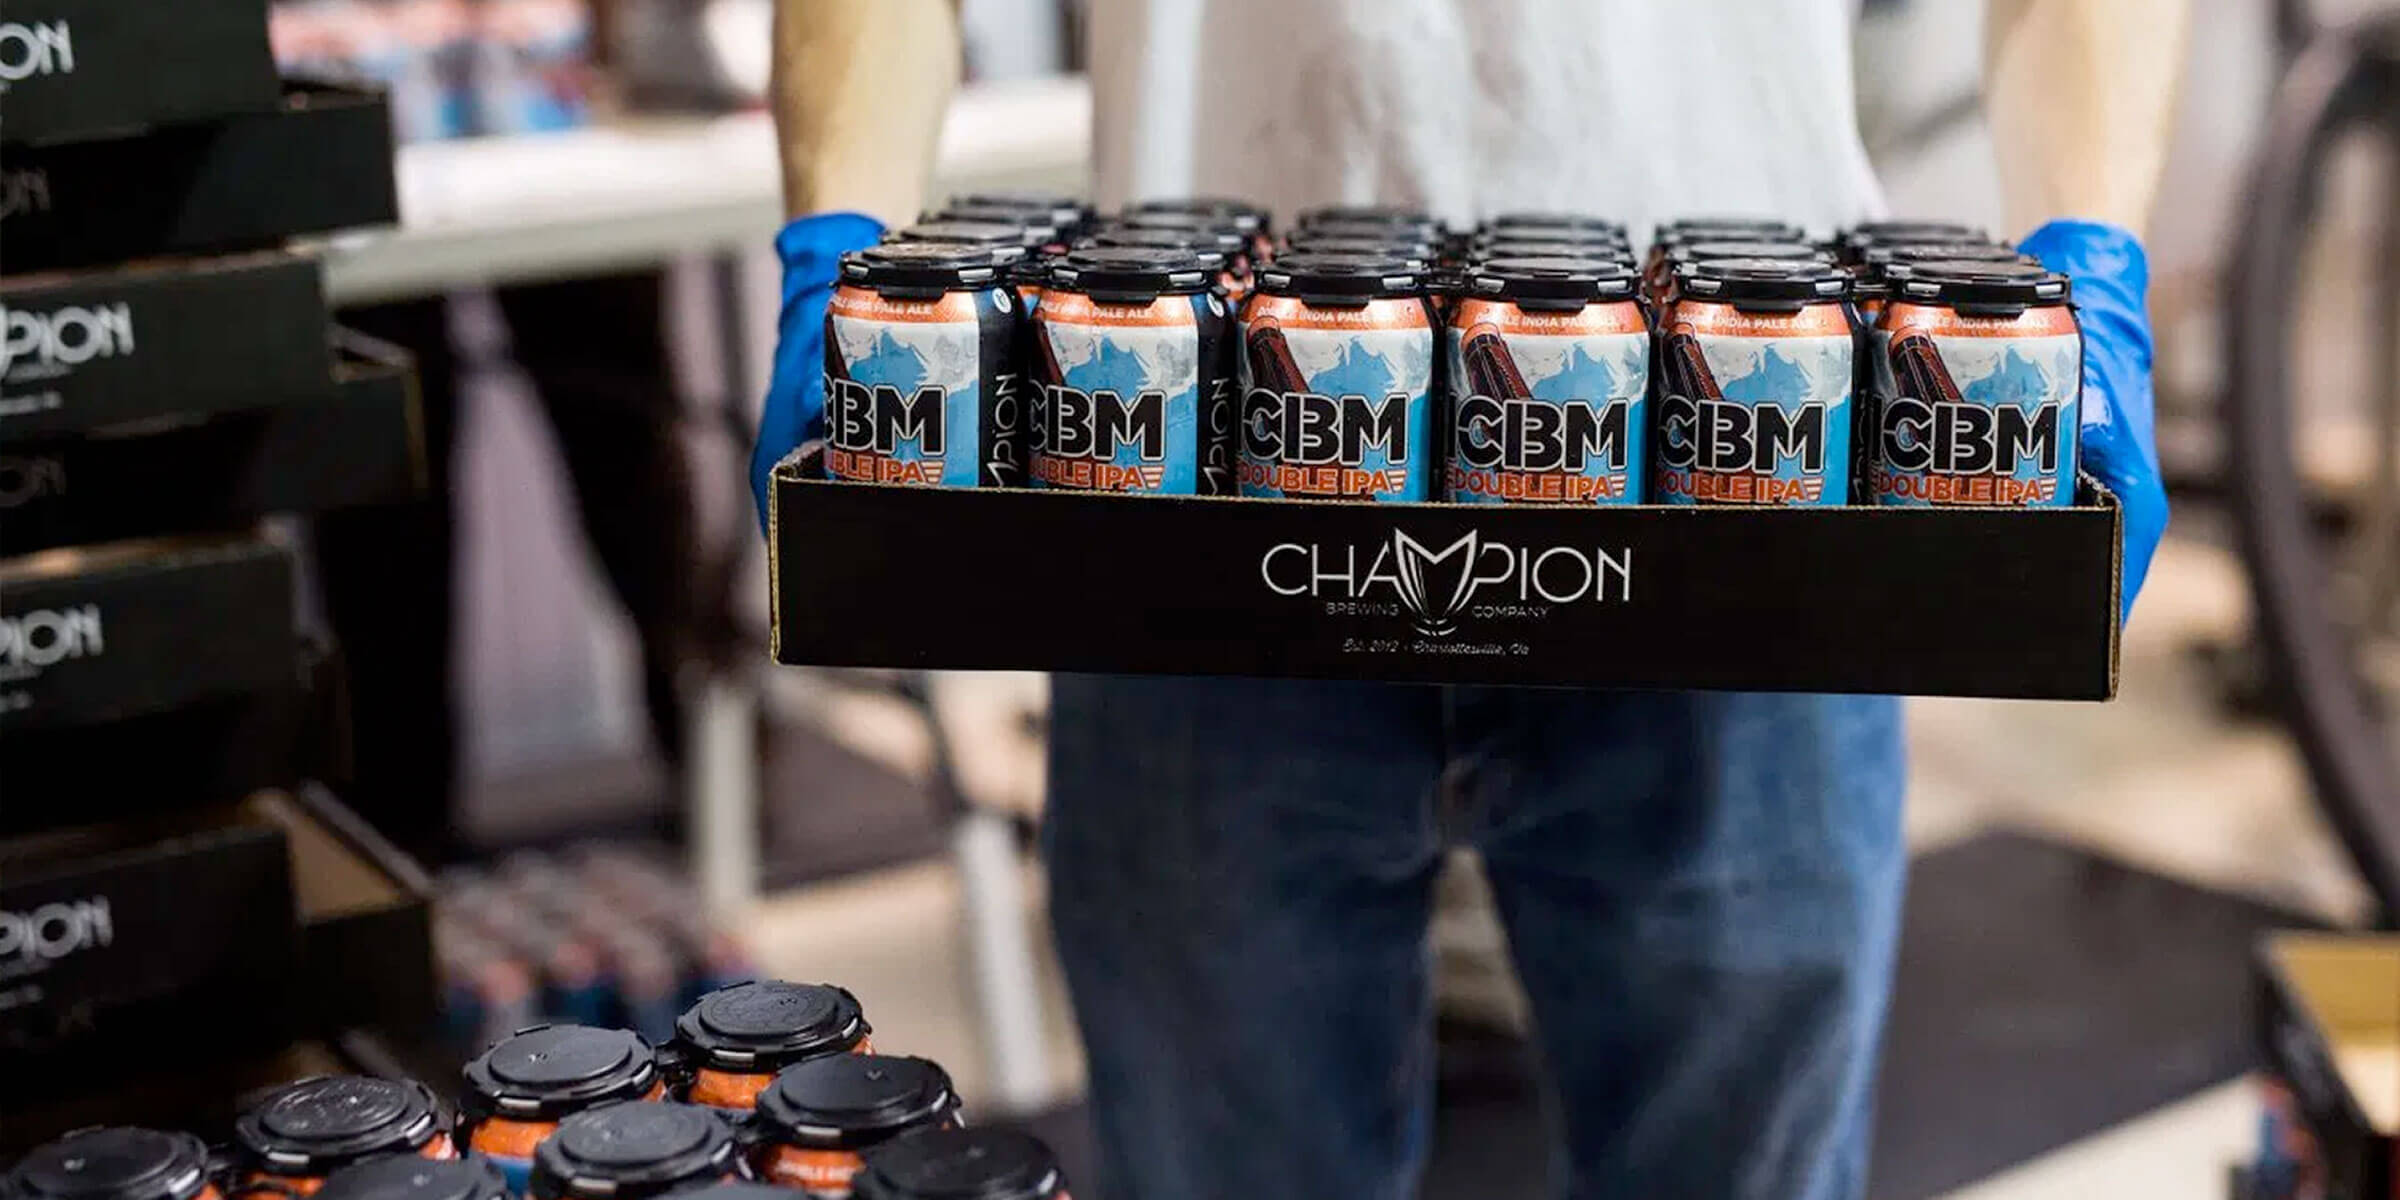 A worker stacks cases of ICBM Double IPA by Champion Brewing